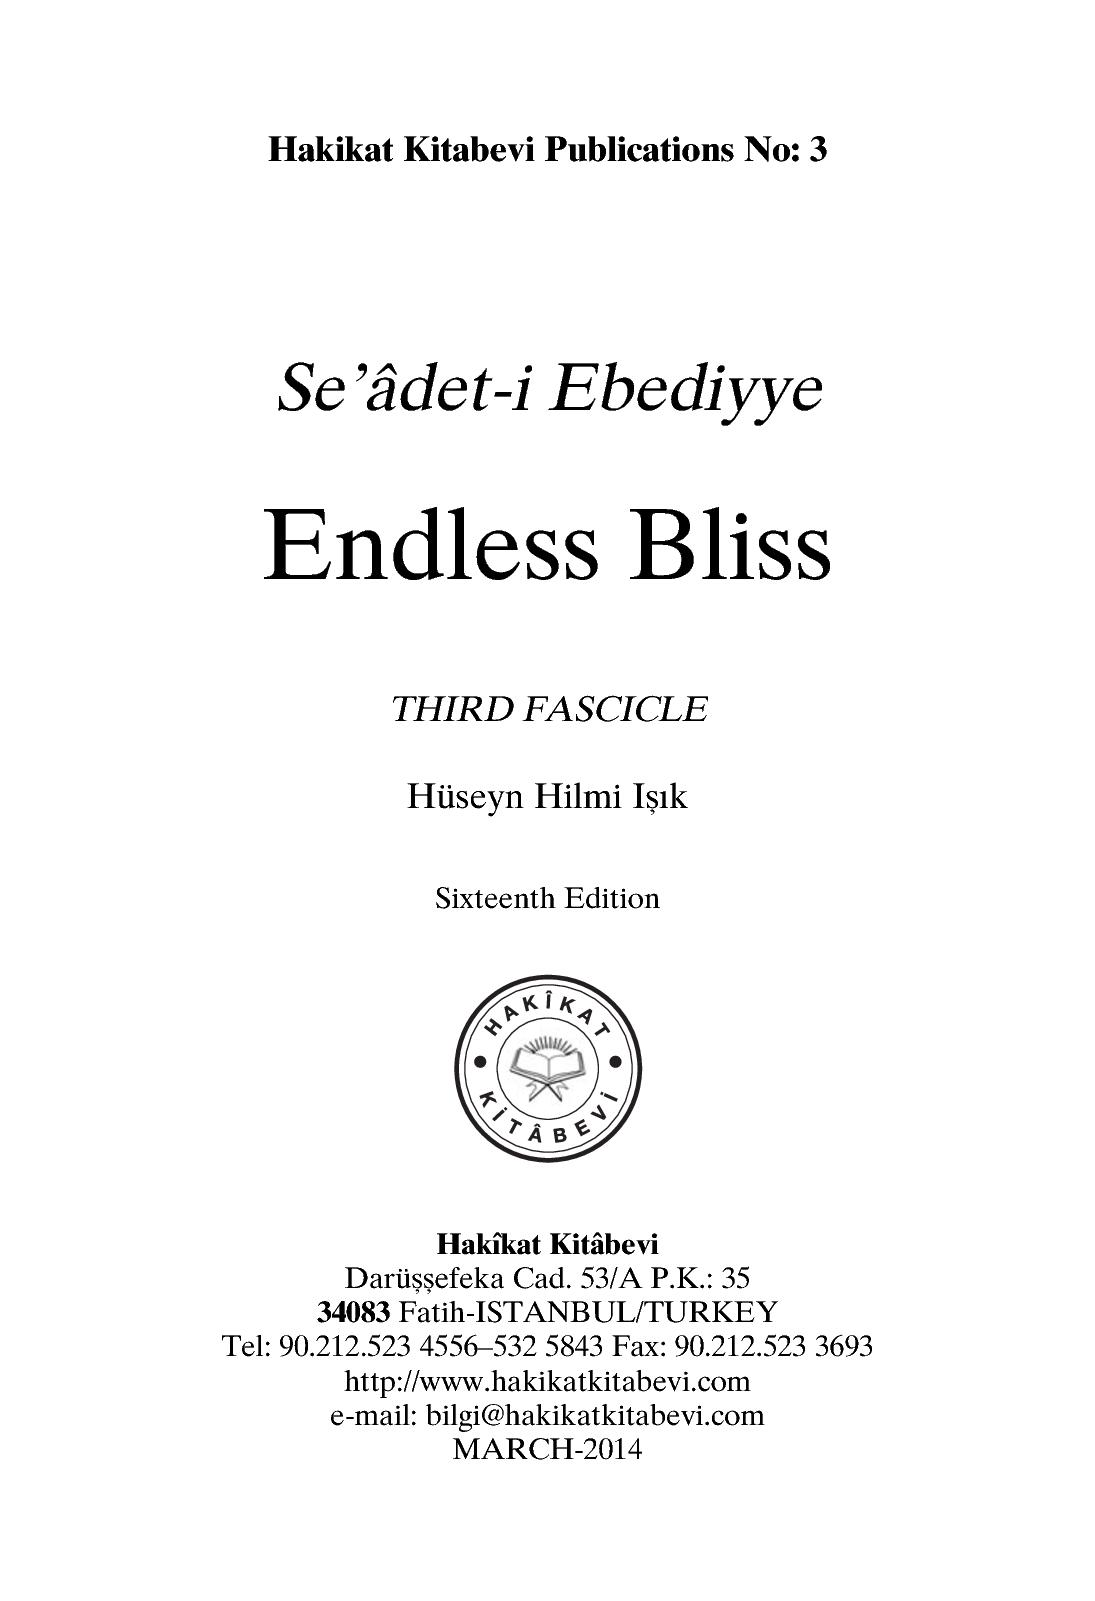 Calamo Seadet I Ebediyye Endless Bliss Third Fascicle Stambul Qur An Mini 30 Juz